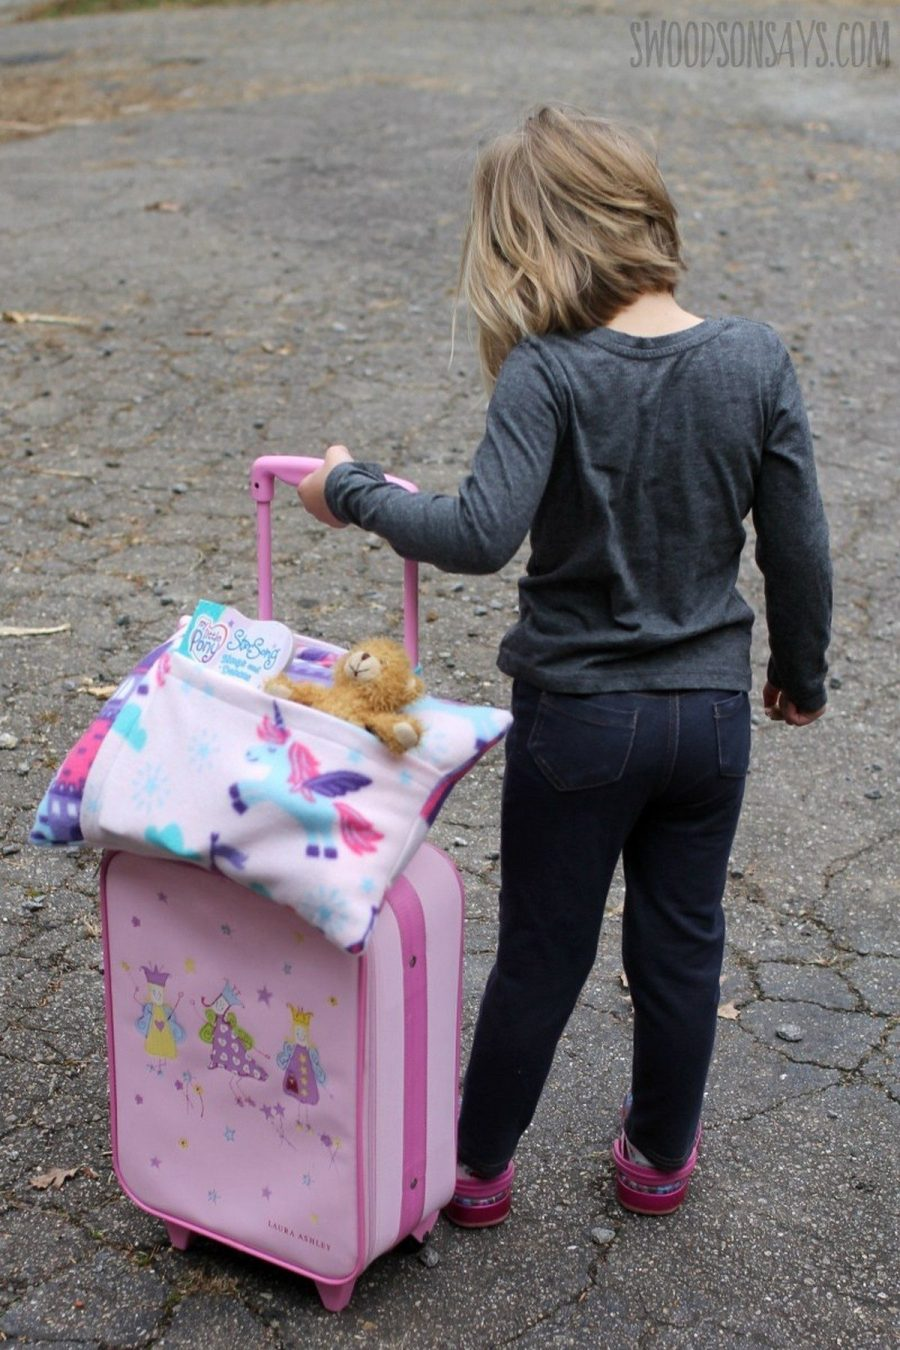 Traveling can be fun but if you have little ones, it can also be a long and often frustrating experience.